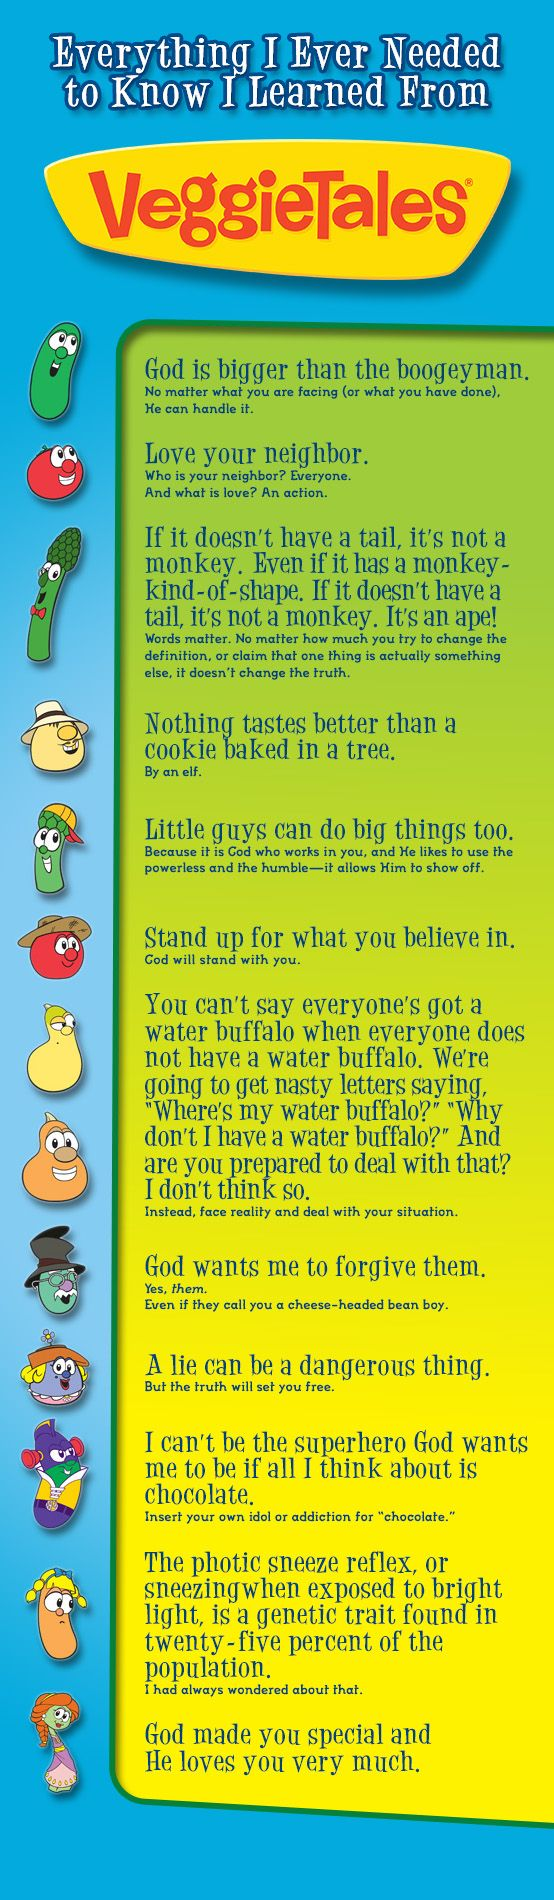 Everything I Needed To Know I Learned From Veggietales